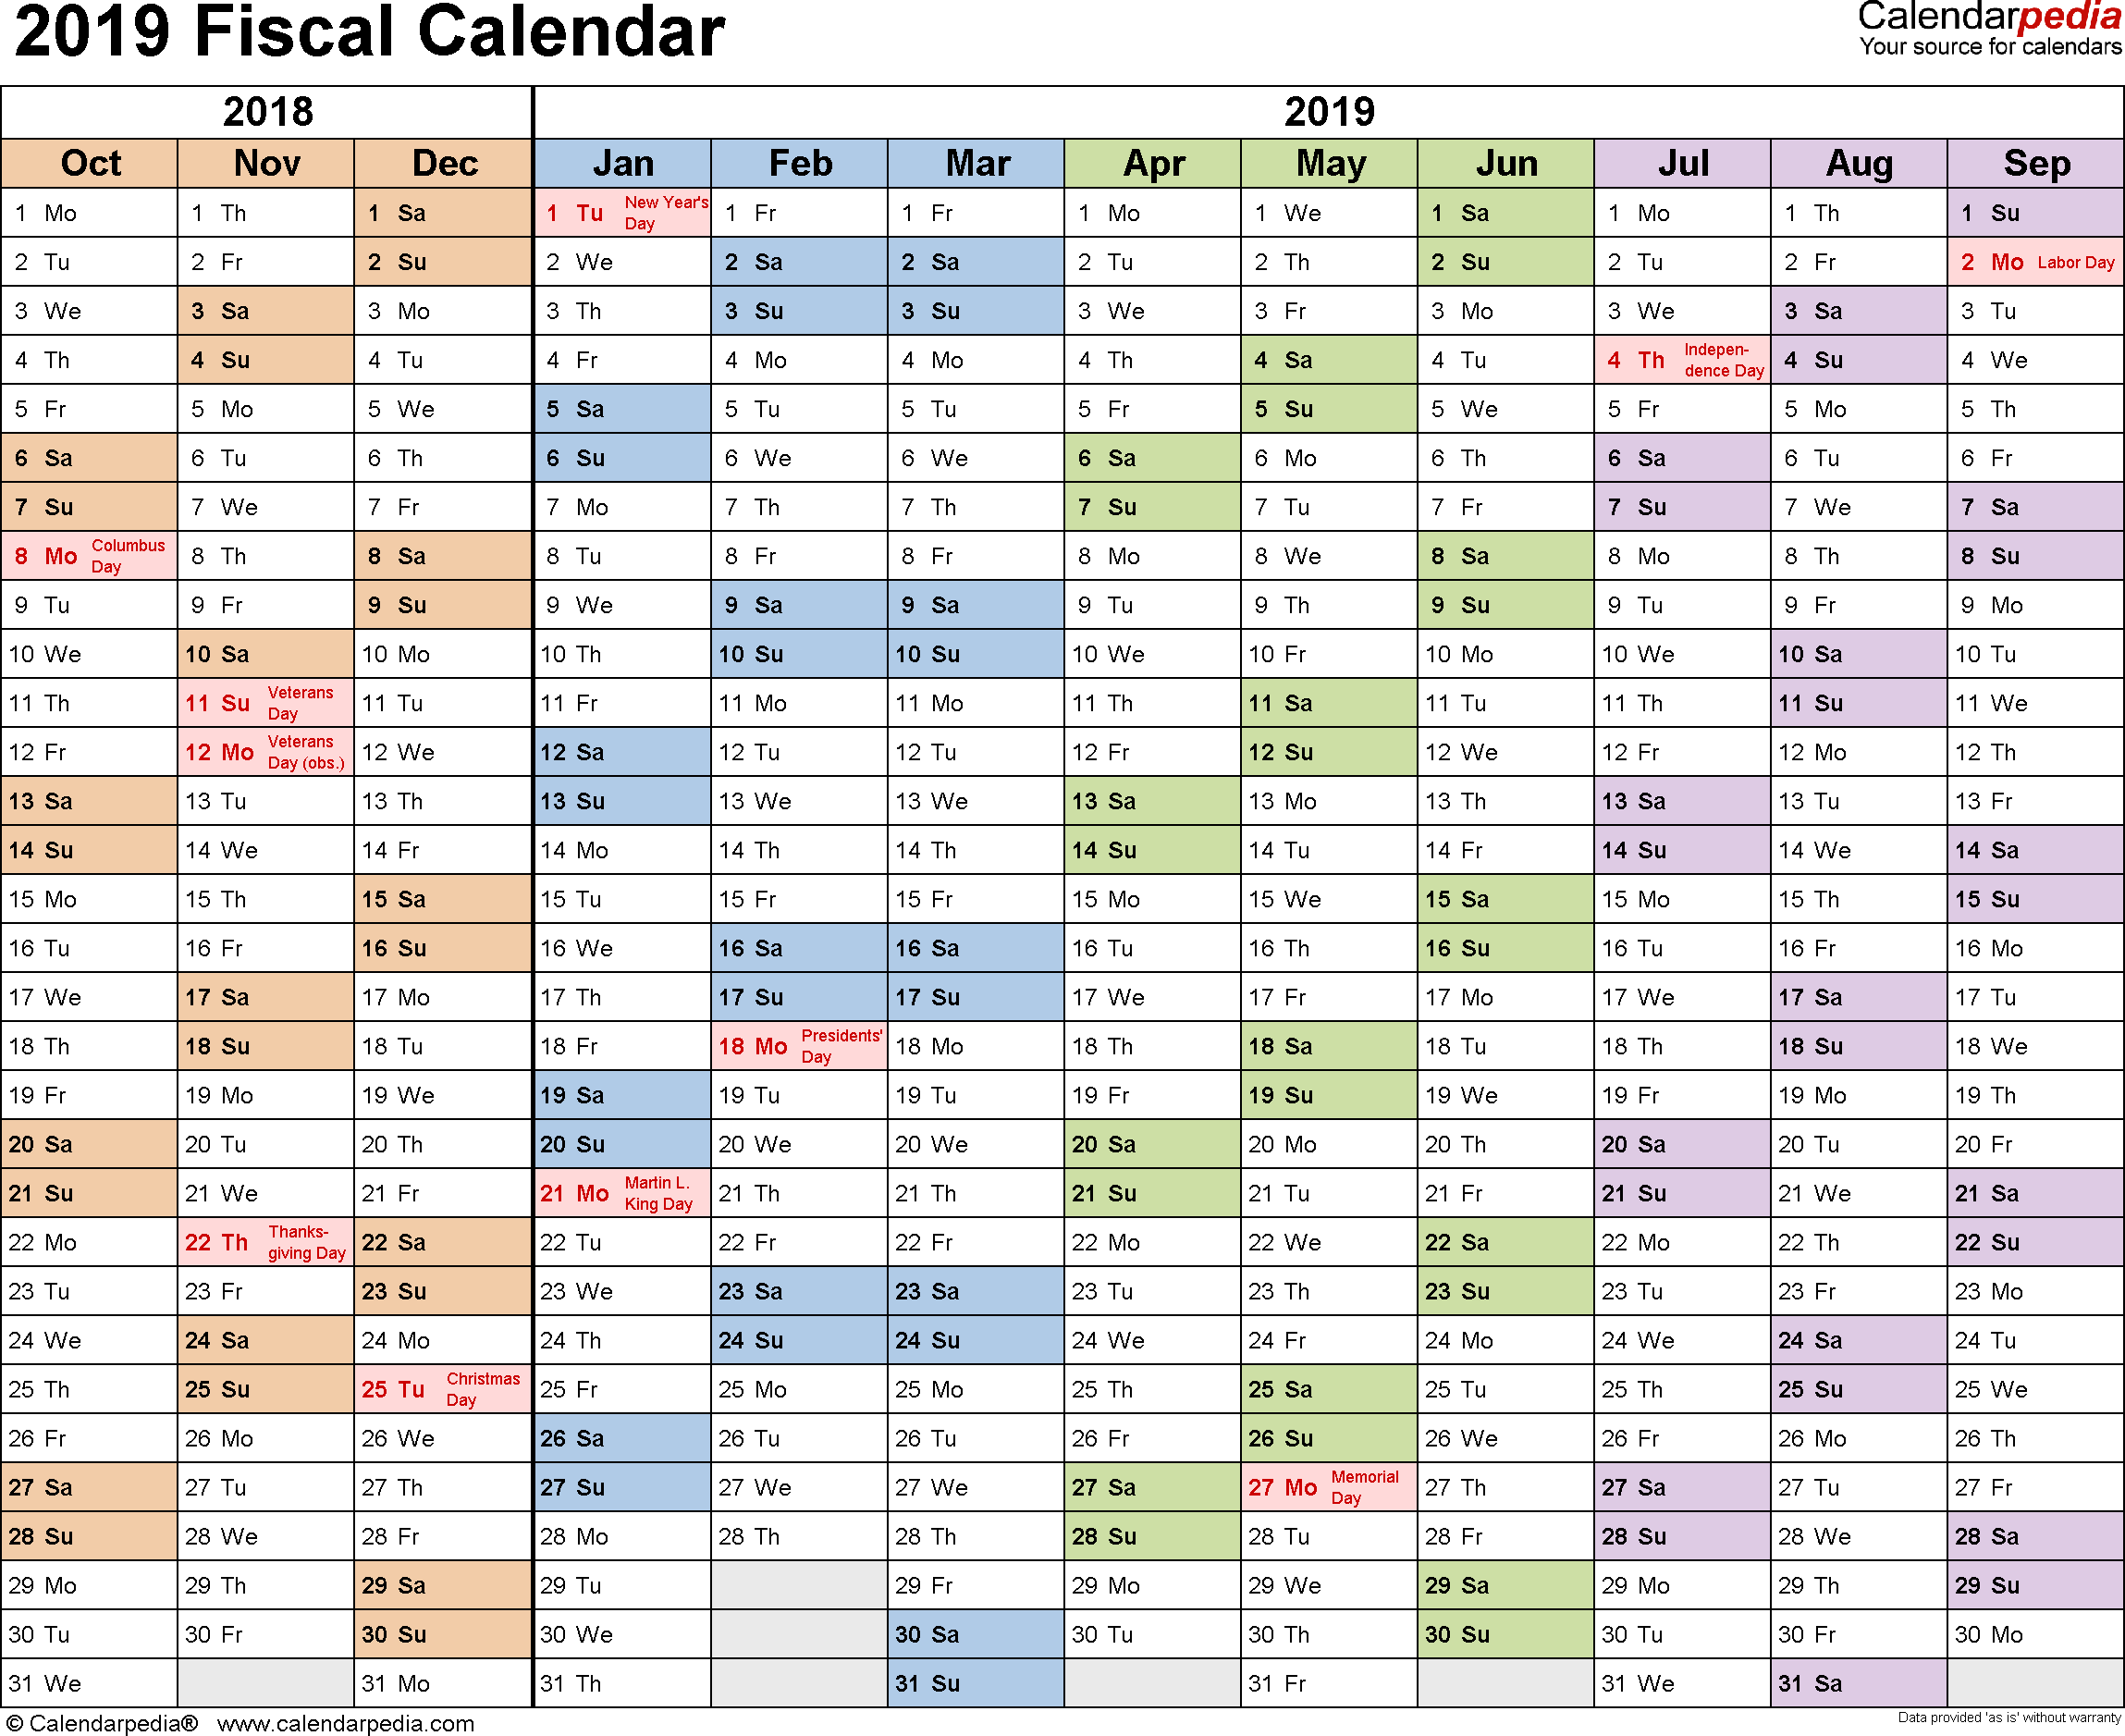 Year 2019 Calendar Template With Fiscal Calendars As Free Printable Word Templates